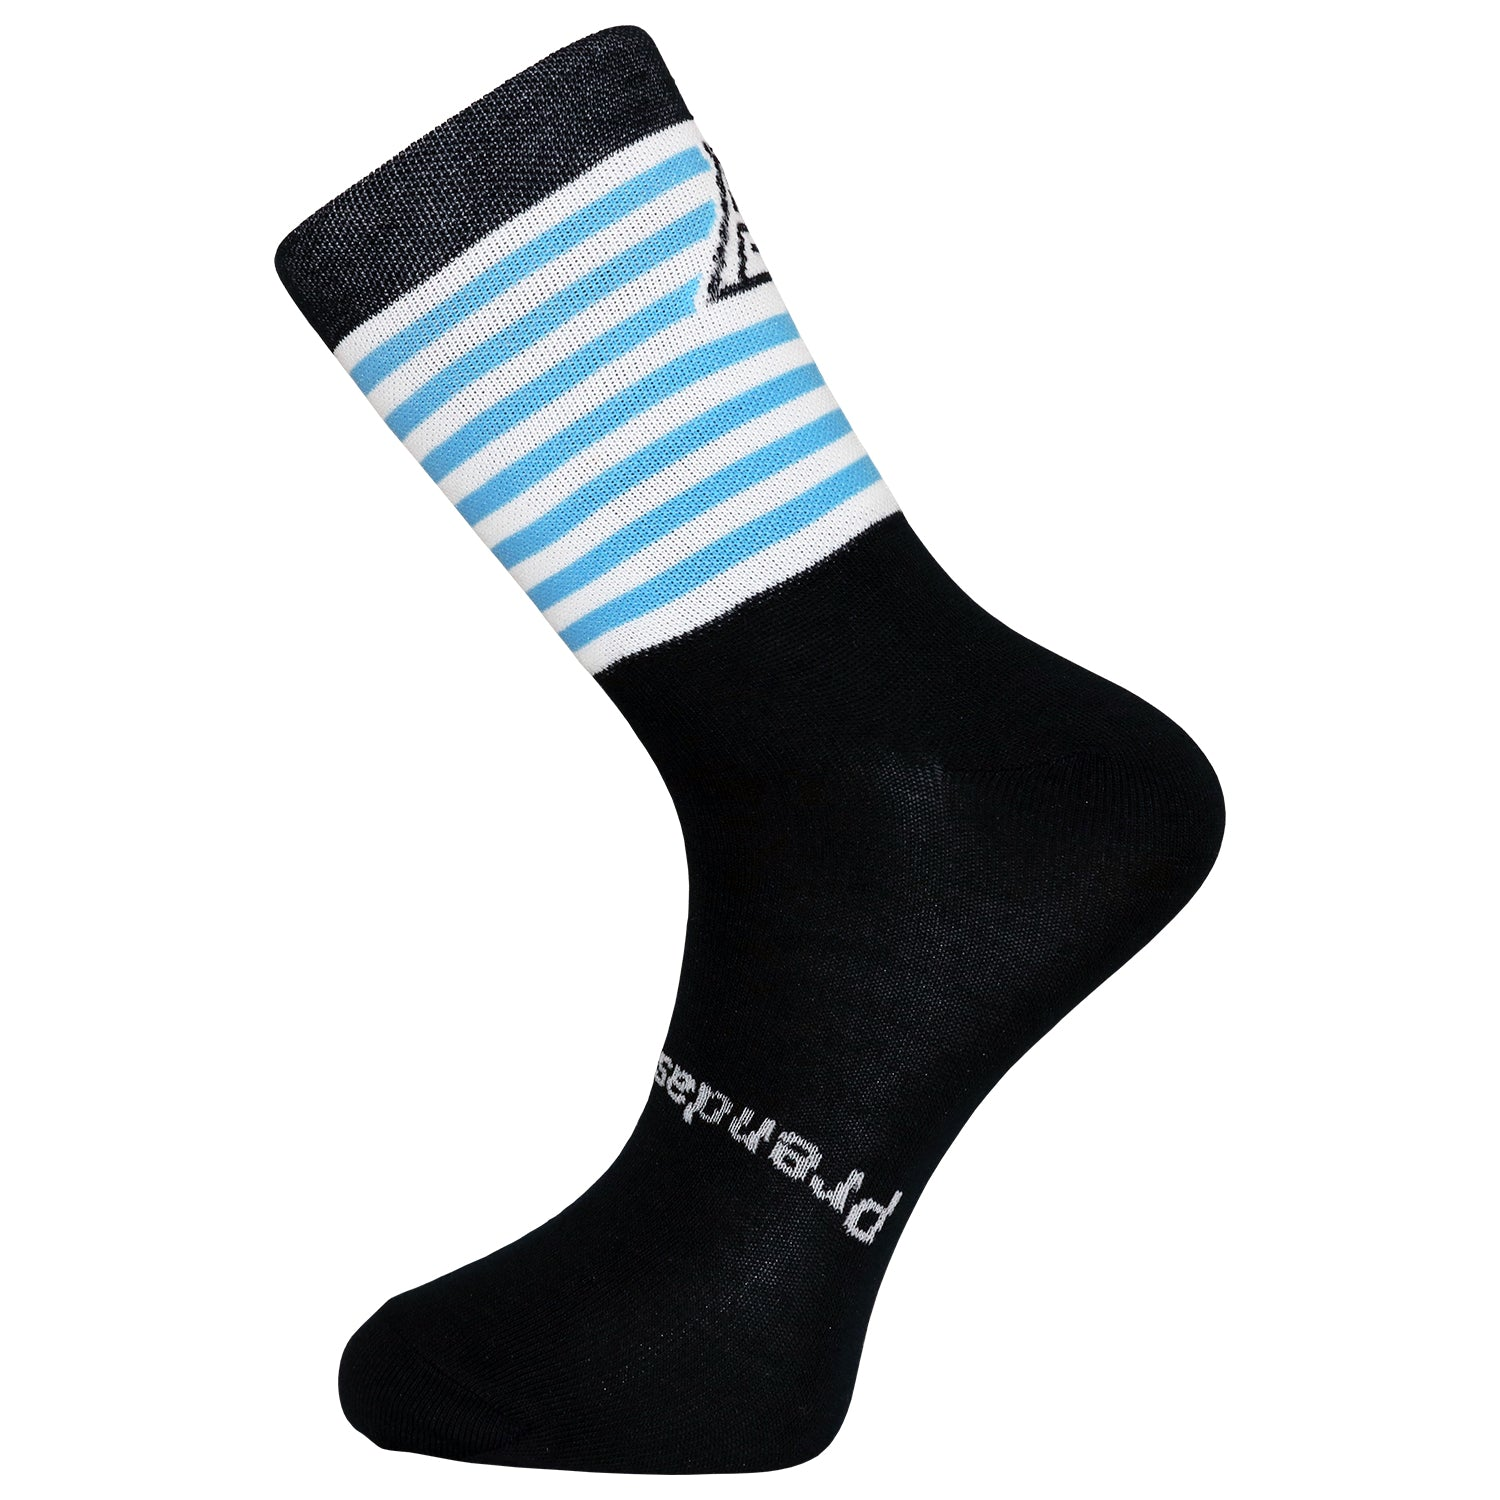 Trofeo Baracchi Race Coolmax Socks